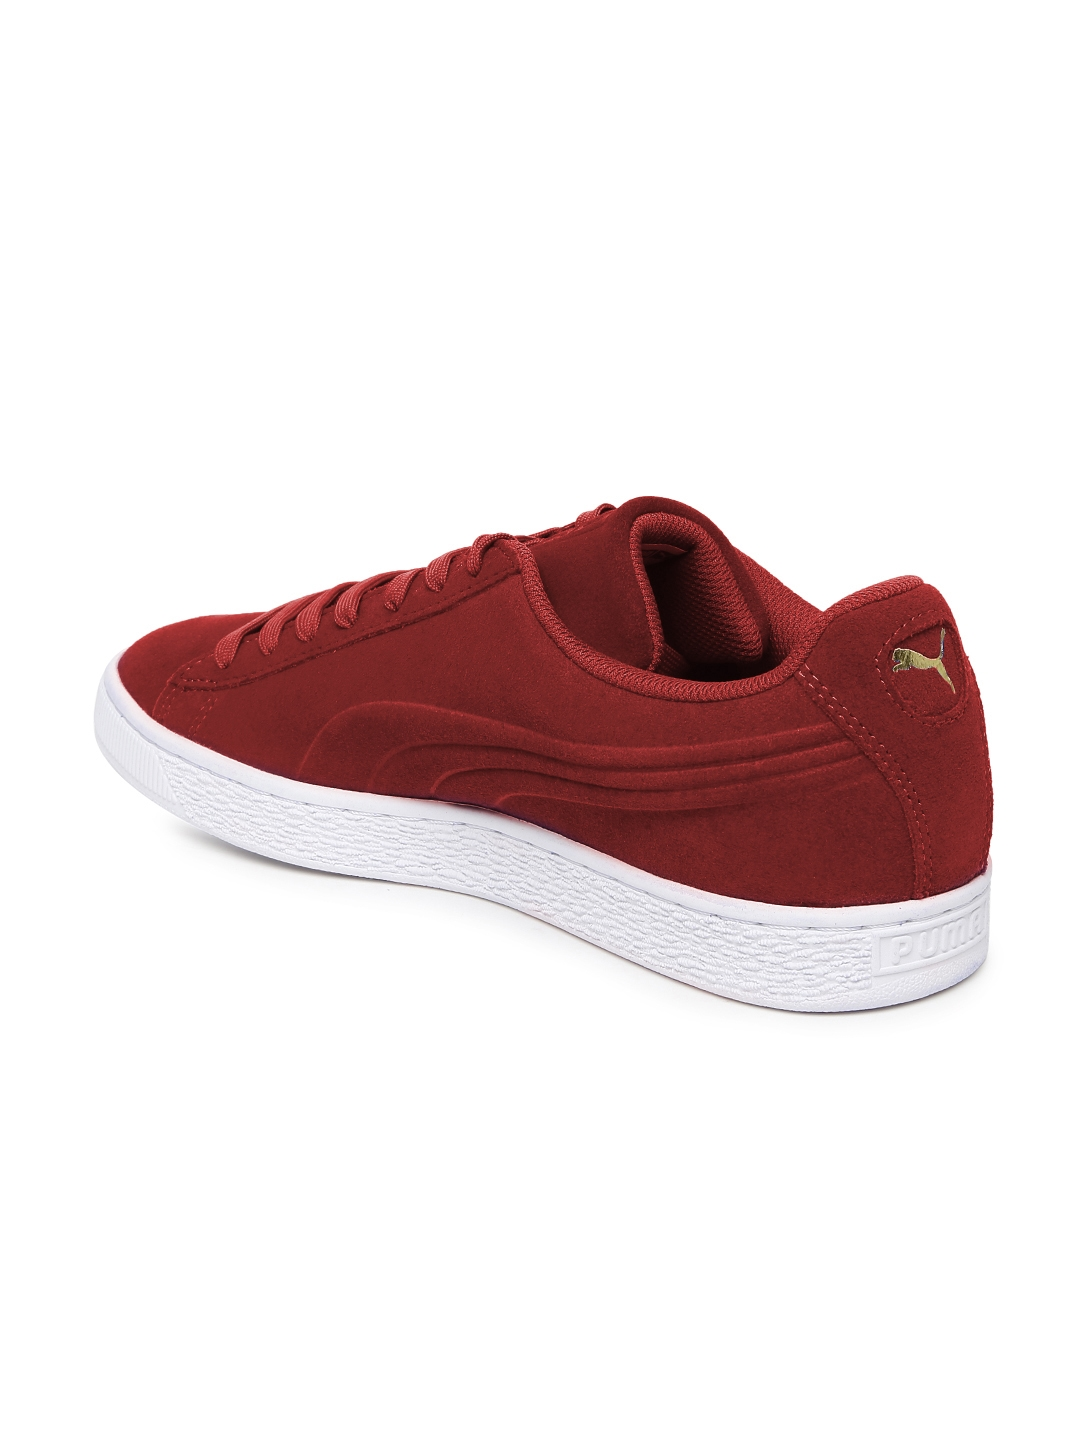 Buy PUMA Unisex Red Classic Debossed Q3 Suede Sneakers - Casual ... e37b243ff